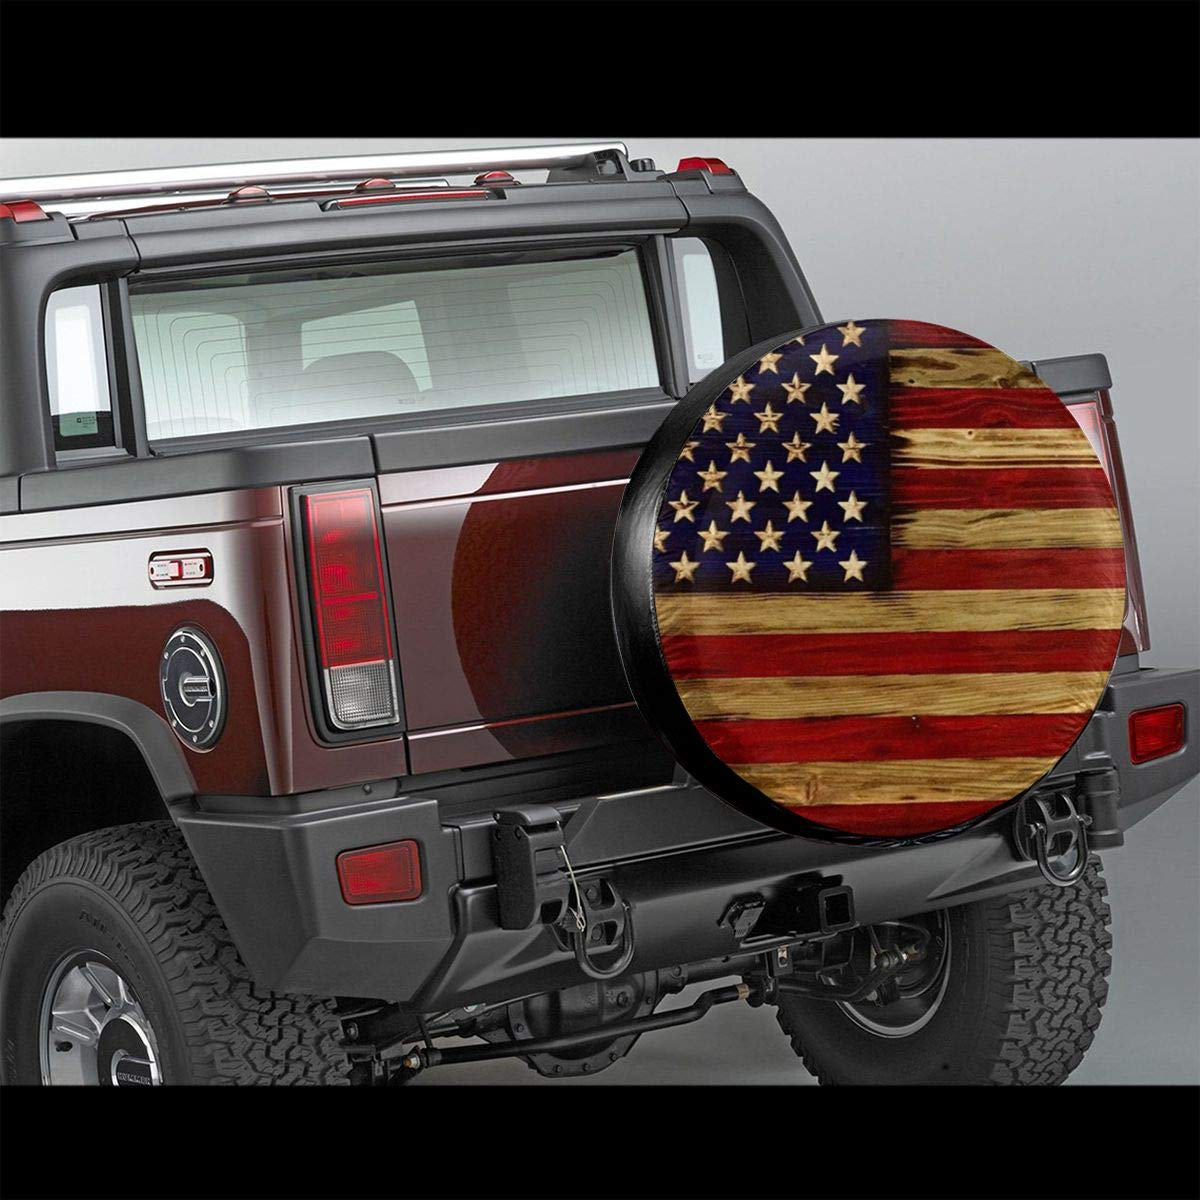 Tire Cover American Flag Reclaimed Wood Potable Polyester Universal Spare Wheel Tire Cover Wheel Covers for Jeep Trailer RV SUV Truck Camper Travel Trailer Accessories 14 Inch